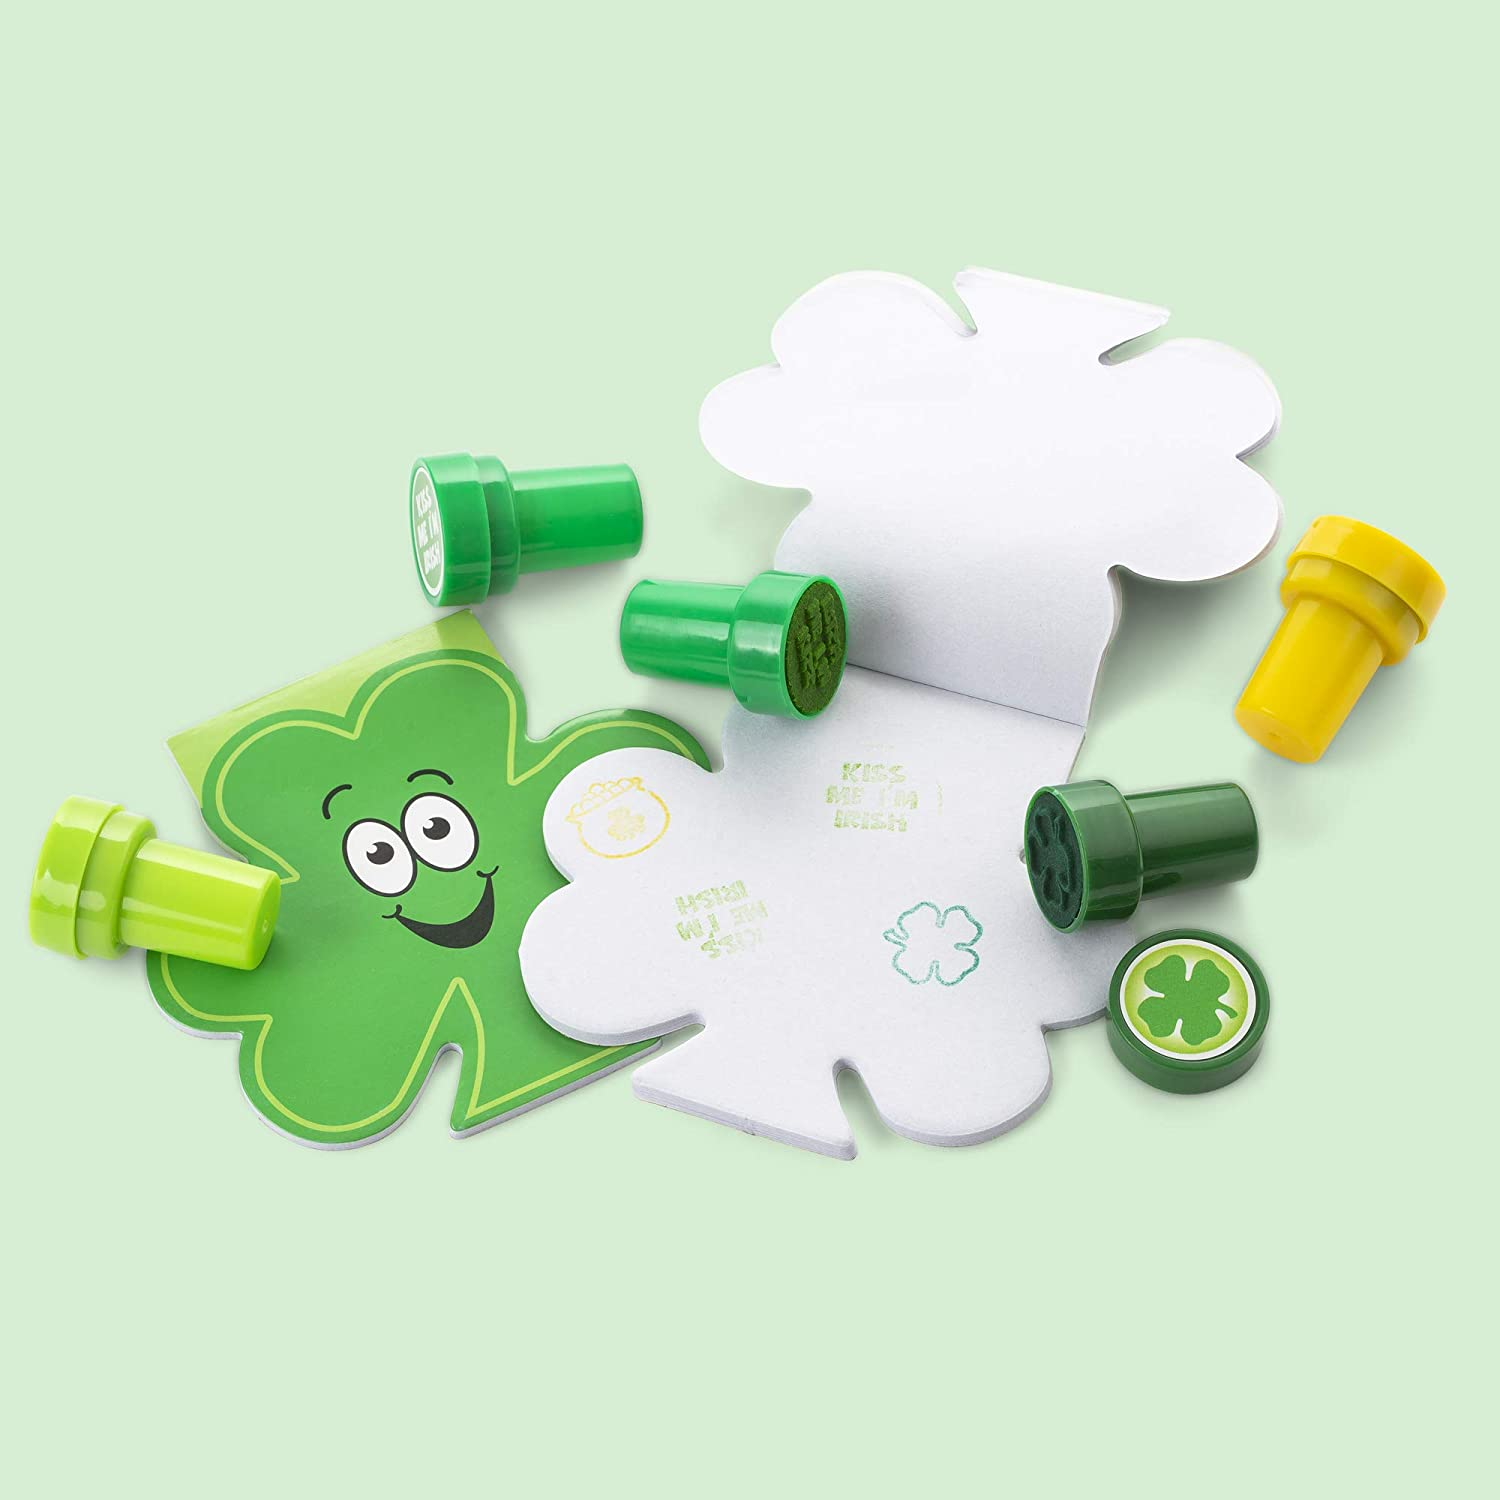 12 Assorted Stampers Carnival And Events. Reward Prizes FAVONIR/™ St Patrick/'s Party Favors 24 Gift Pack Shamrock Themed Irish Stationery Set Ideal As Party Favor Fillers 12 Notepads